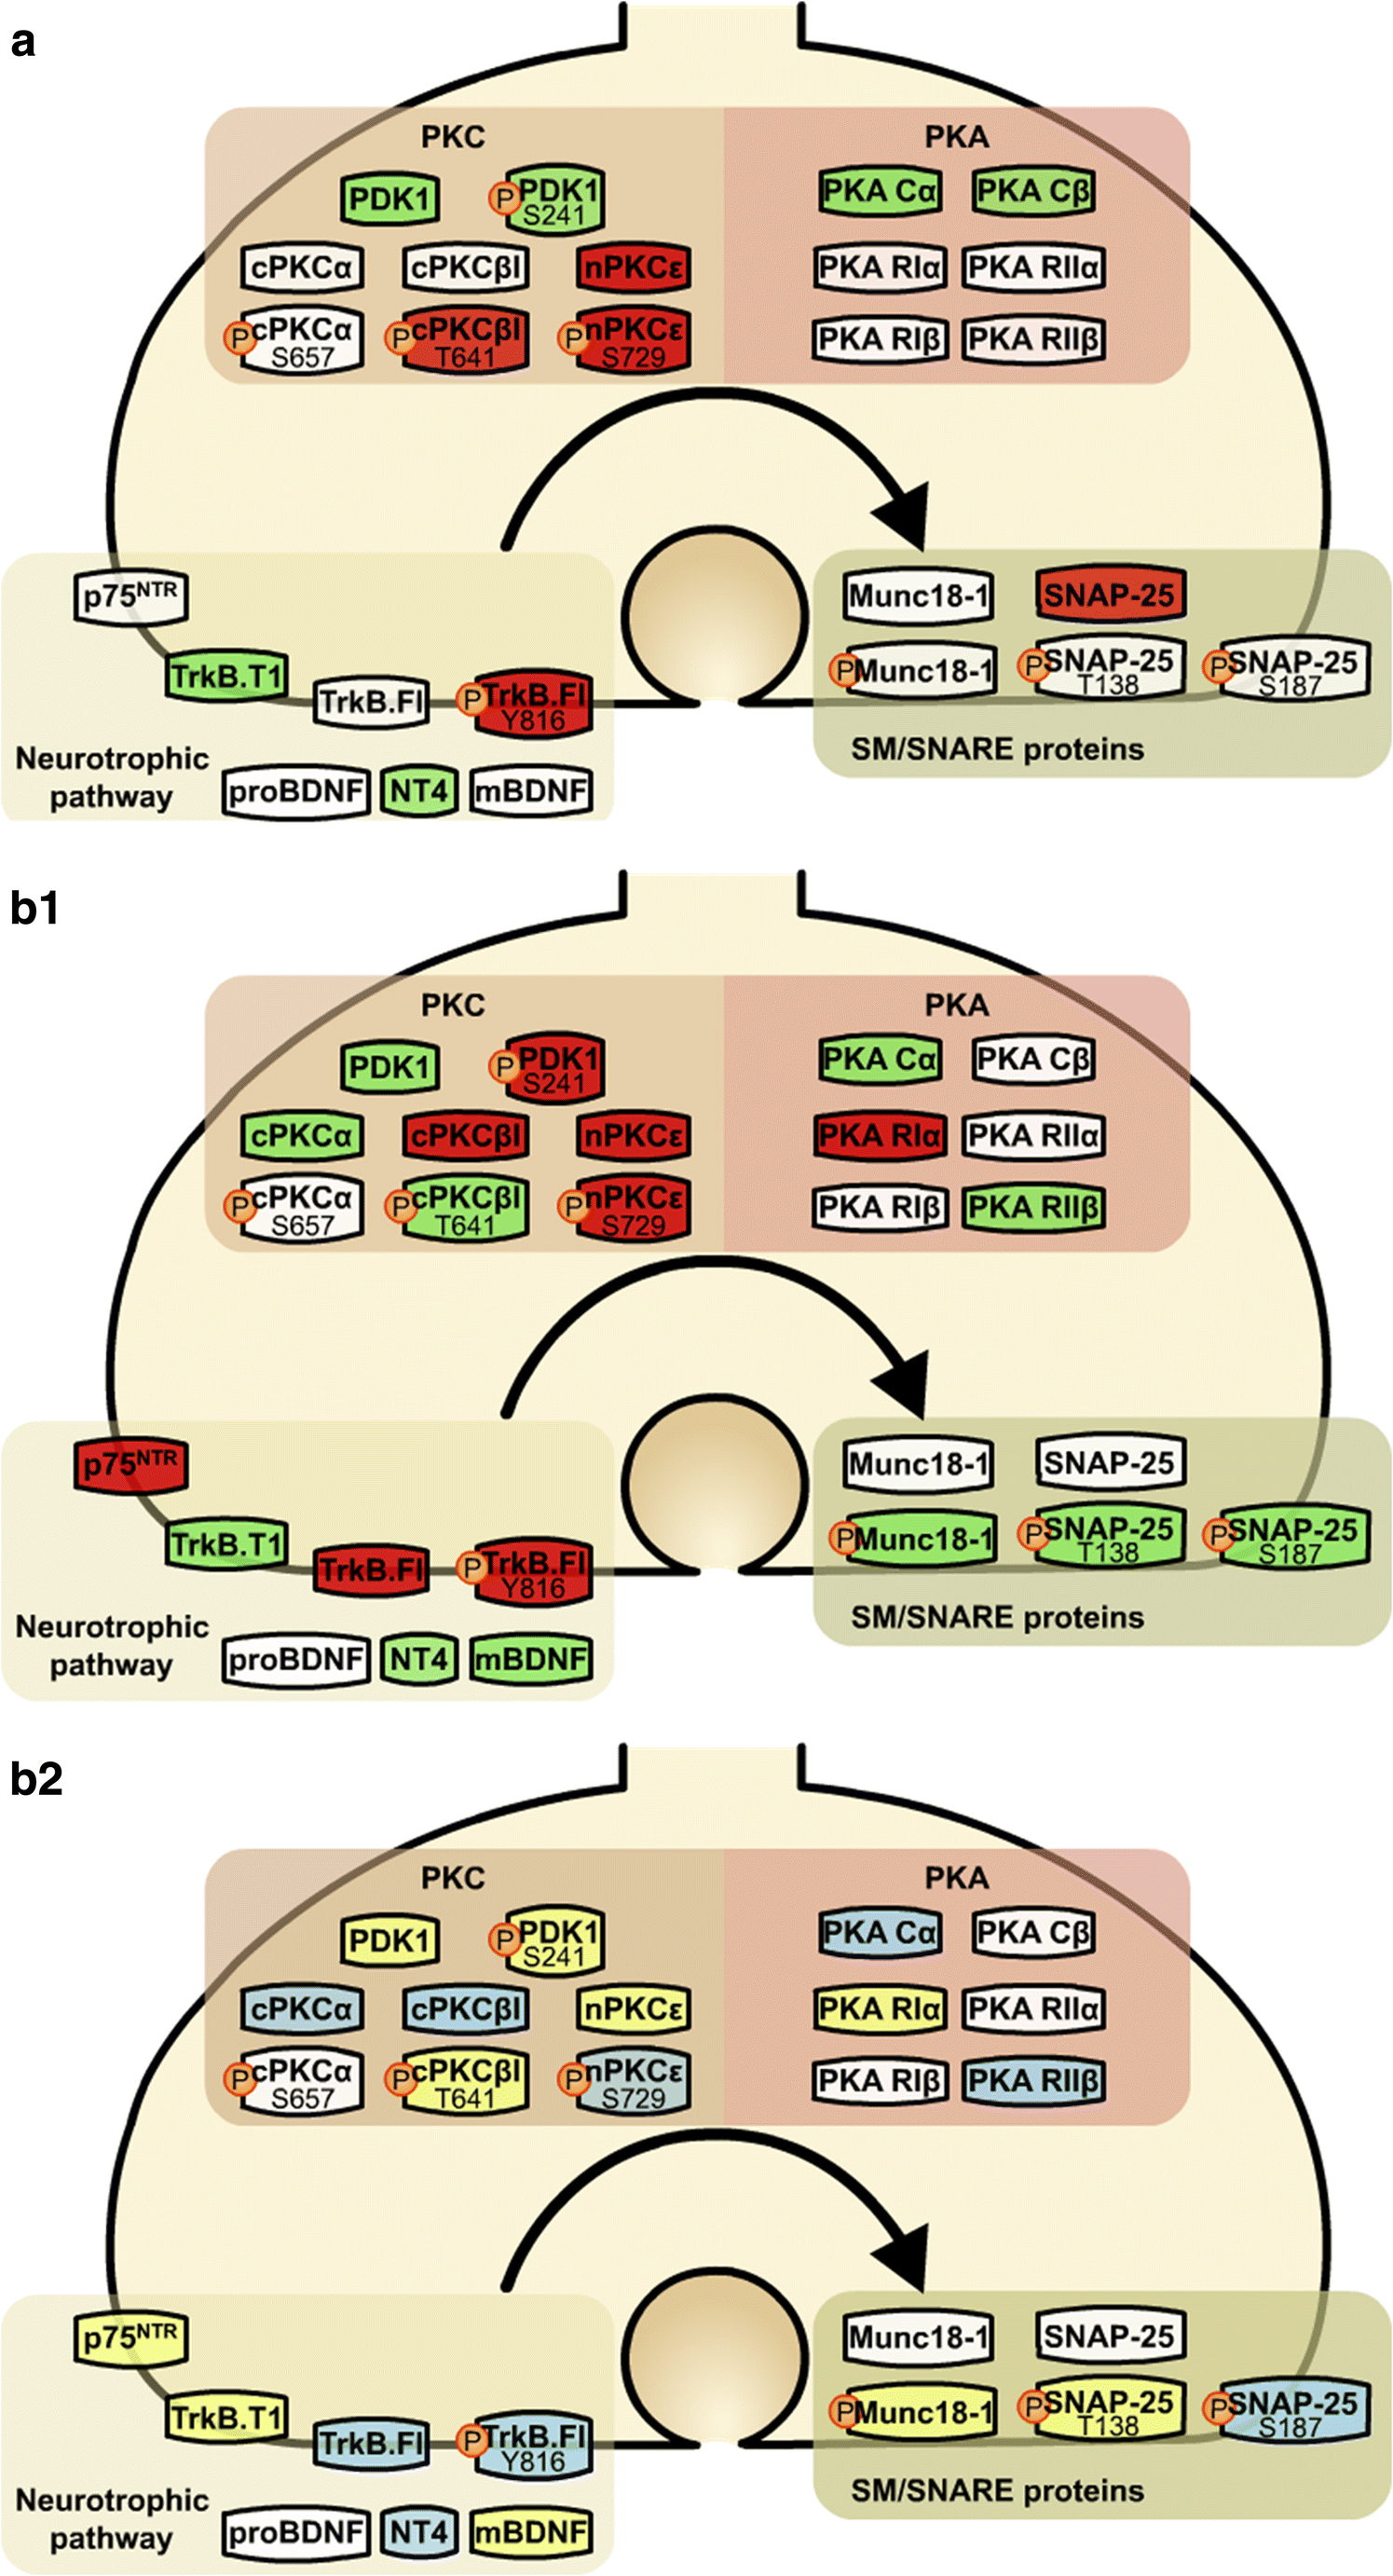 Overview of Impaired BDNF Signaling, Their Coupled Downstream Serine